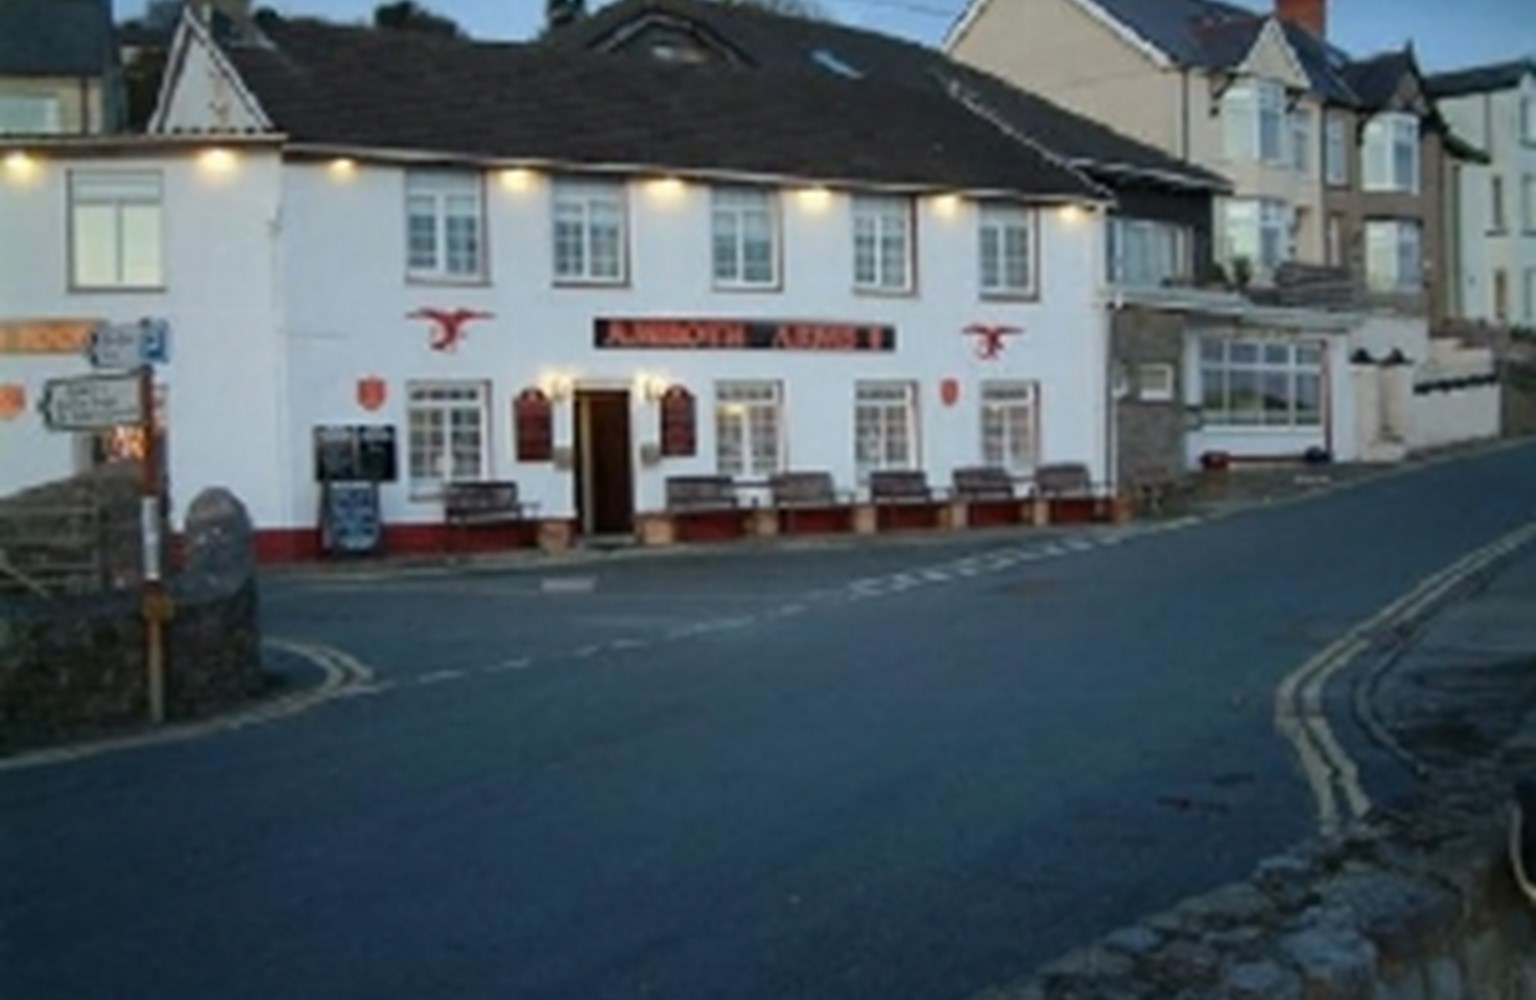 The Amroth Arms